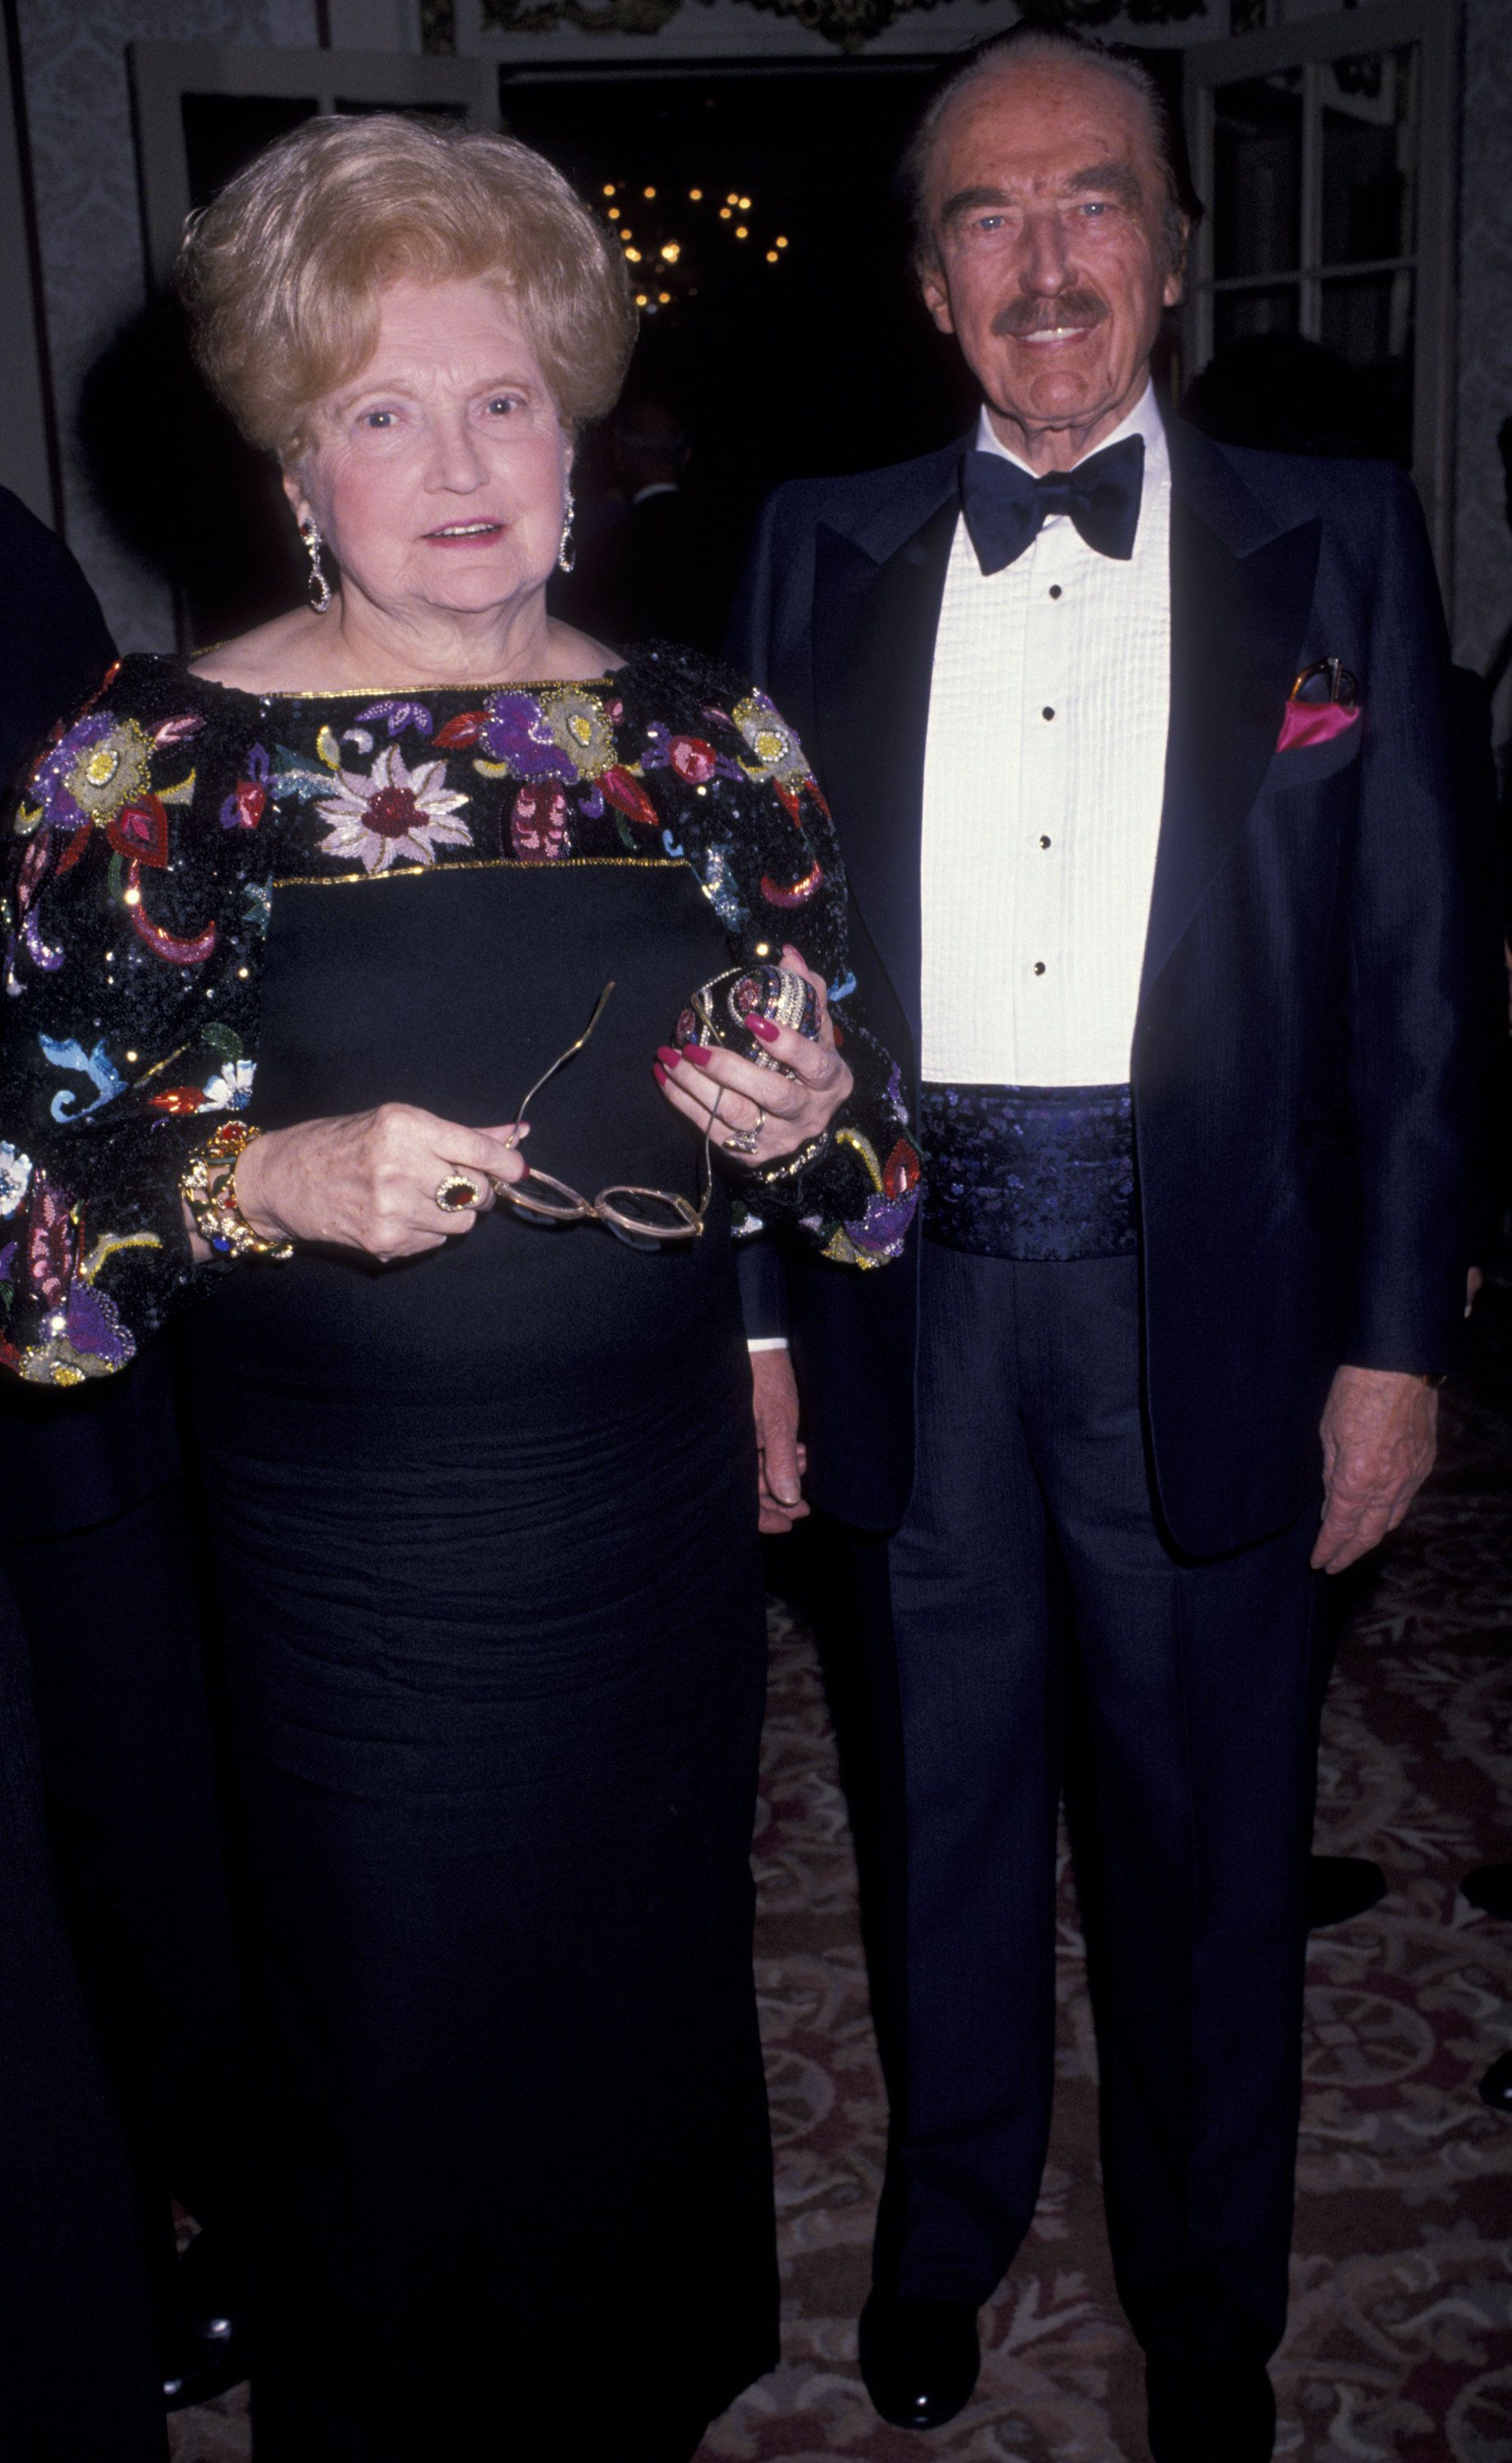 NEW YORK CITY - MAY 12:  Mary MacLeod Trump and Fred Trump attend 17th Annual Police Athletic League Awards Dinner on May 12, 1999 at the Plaza Hotel in New York City. (Photo by Ron Galella/WireImage)